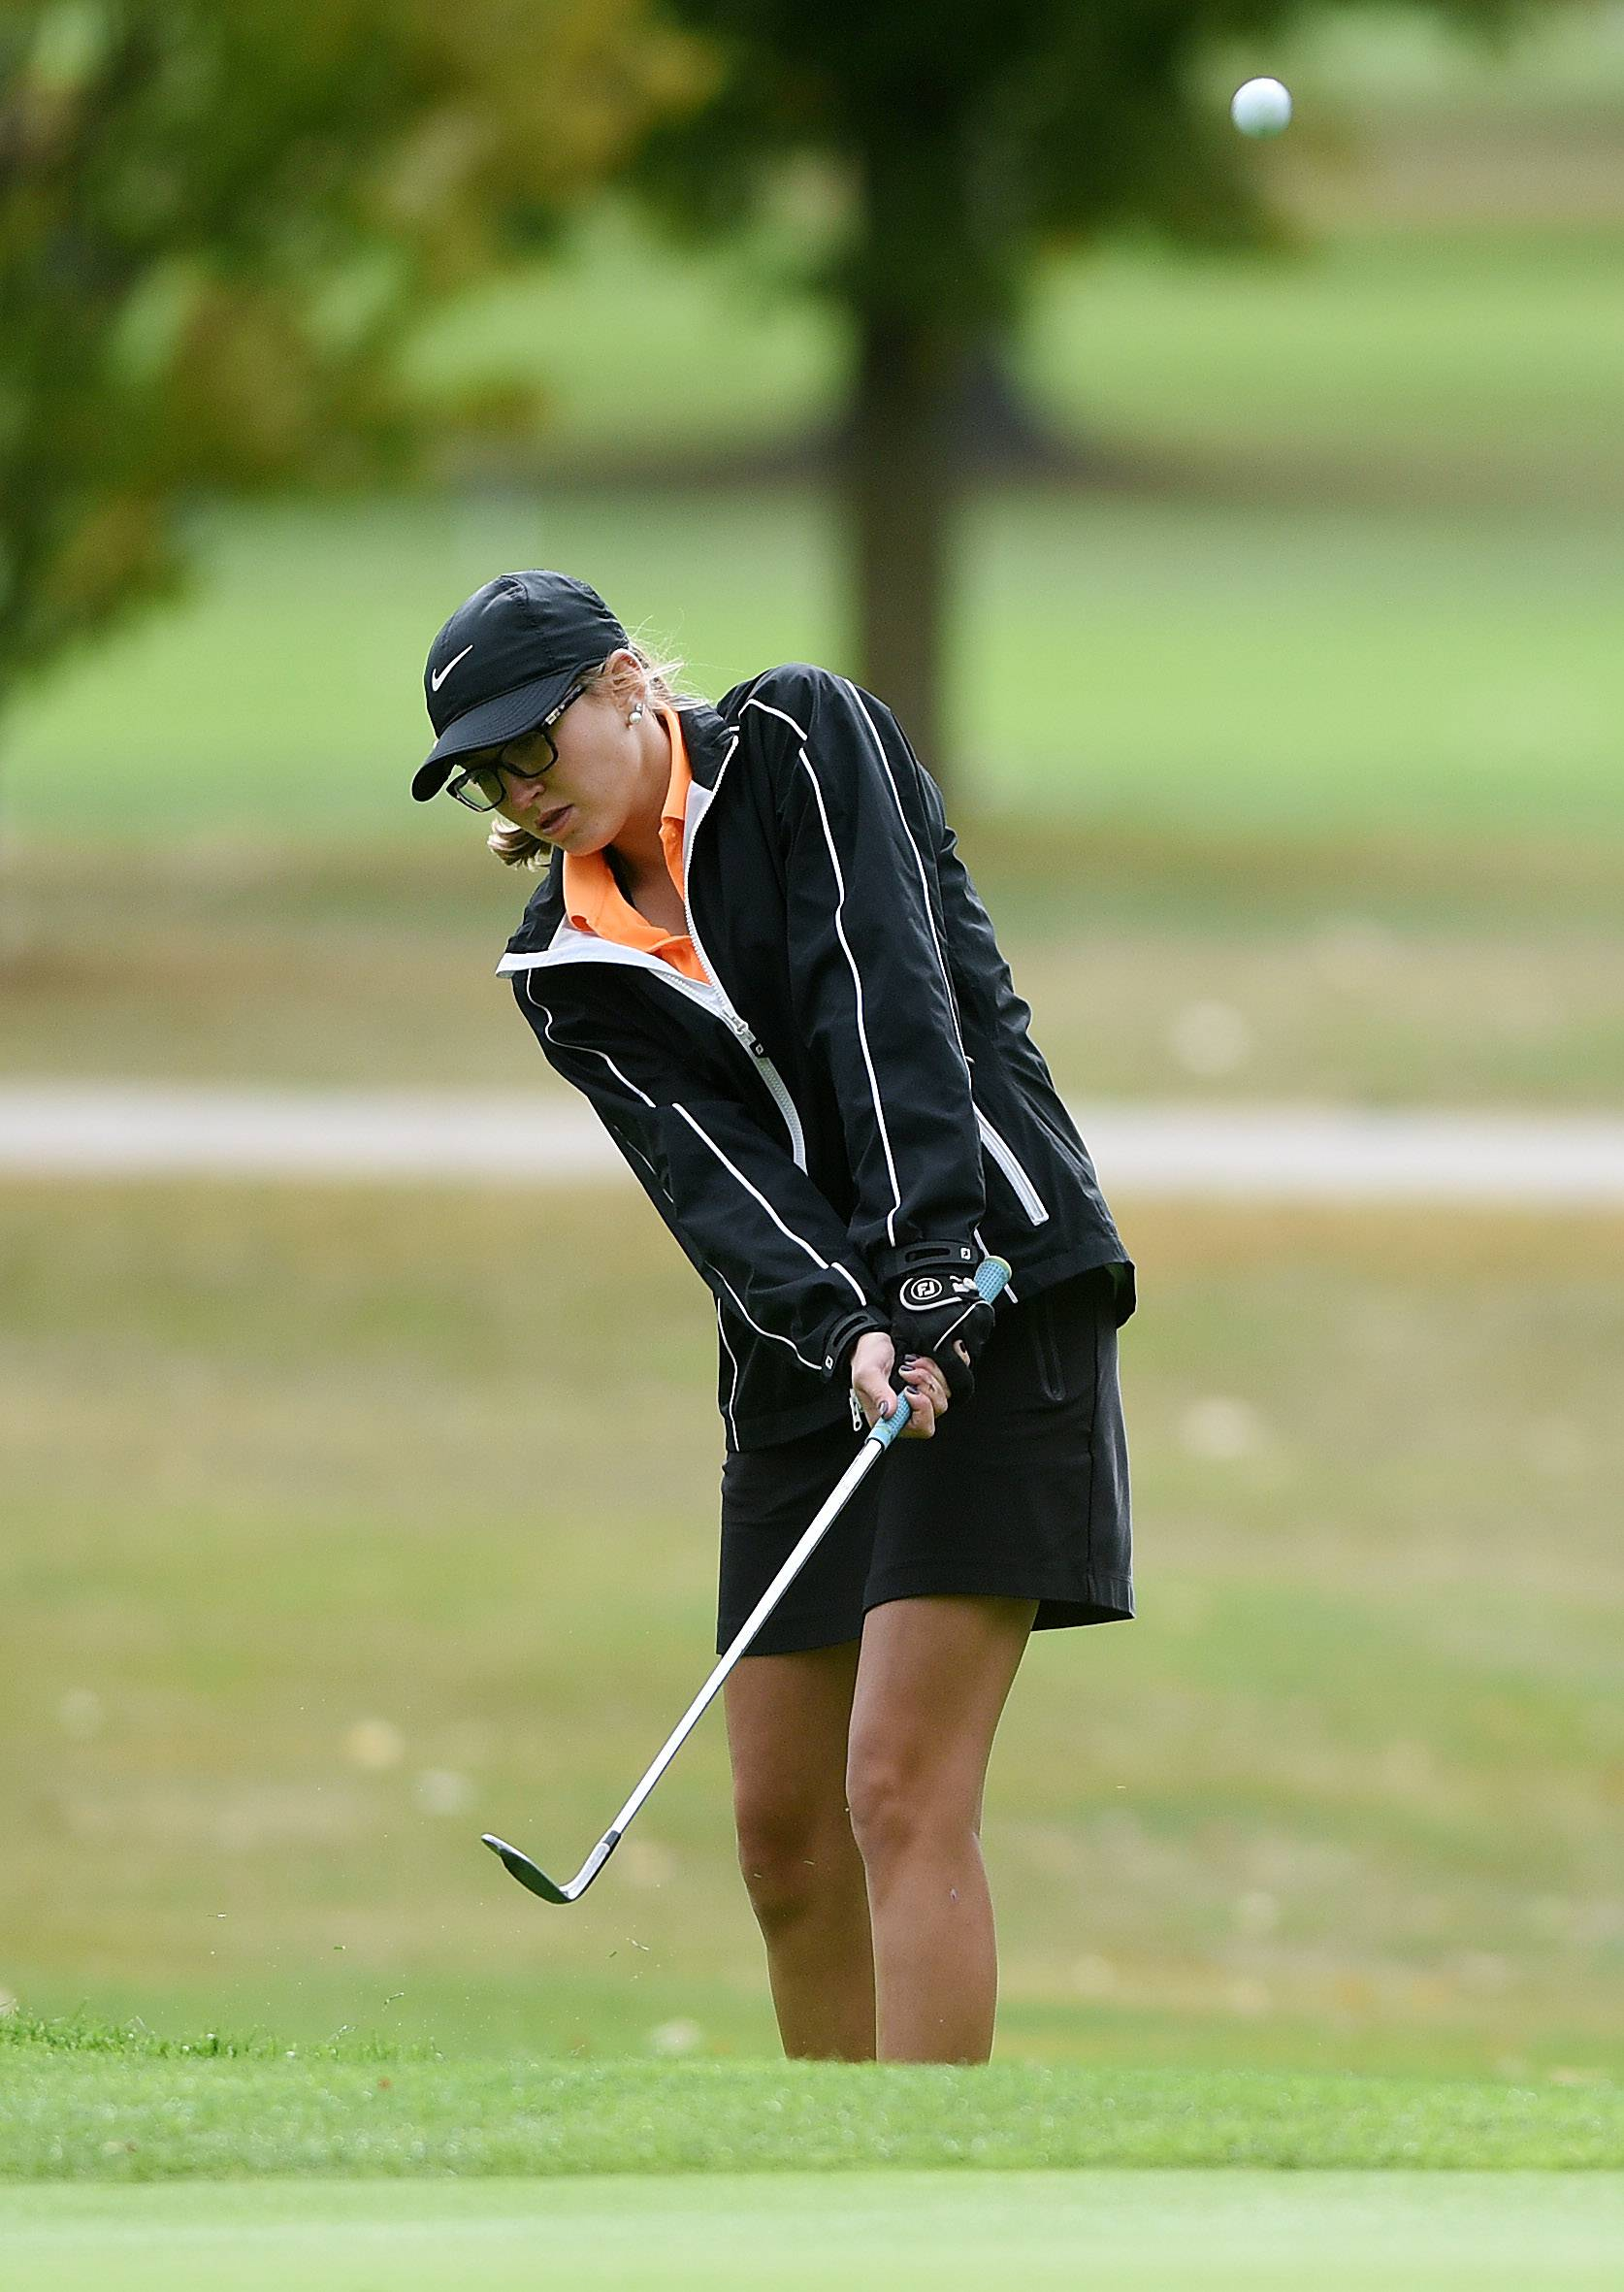 St. Charles East's Nicole Jordan chips on to the green during the Burlington Central girls golf regional at Sycamore Golf Club Wednesday.